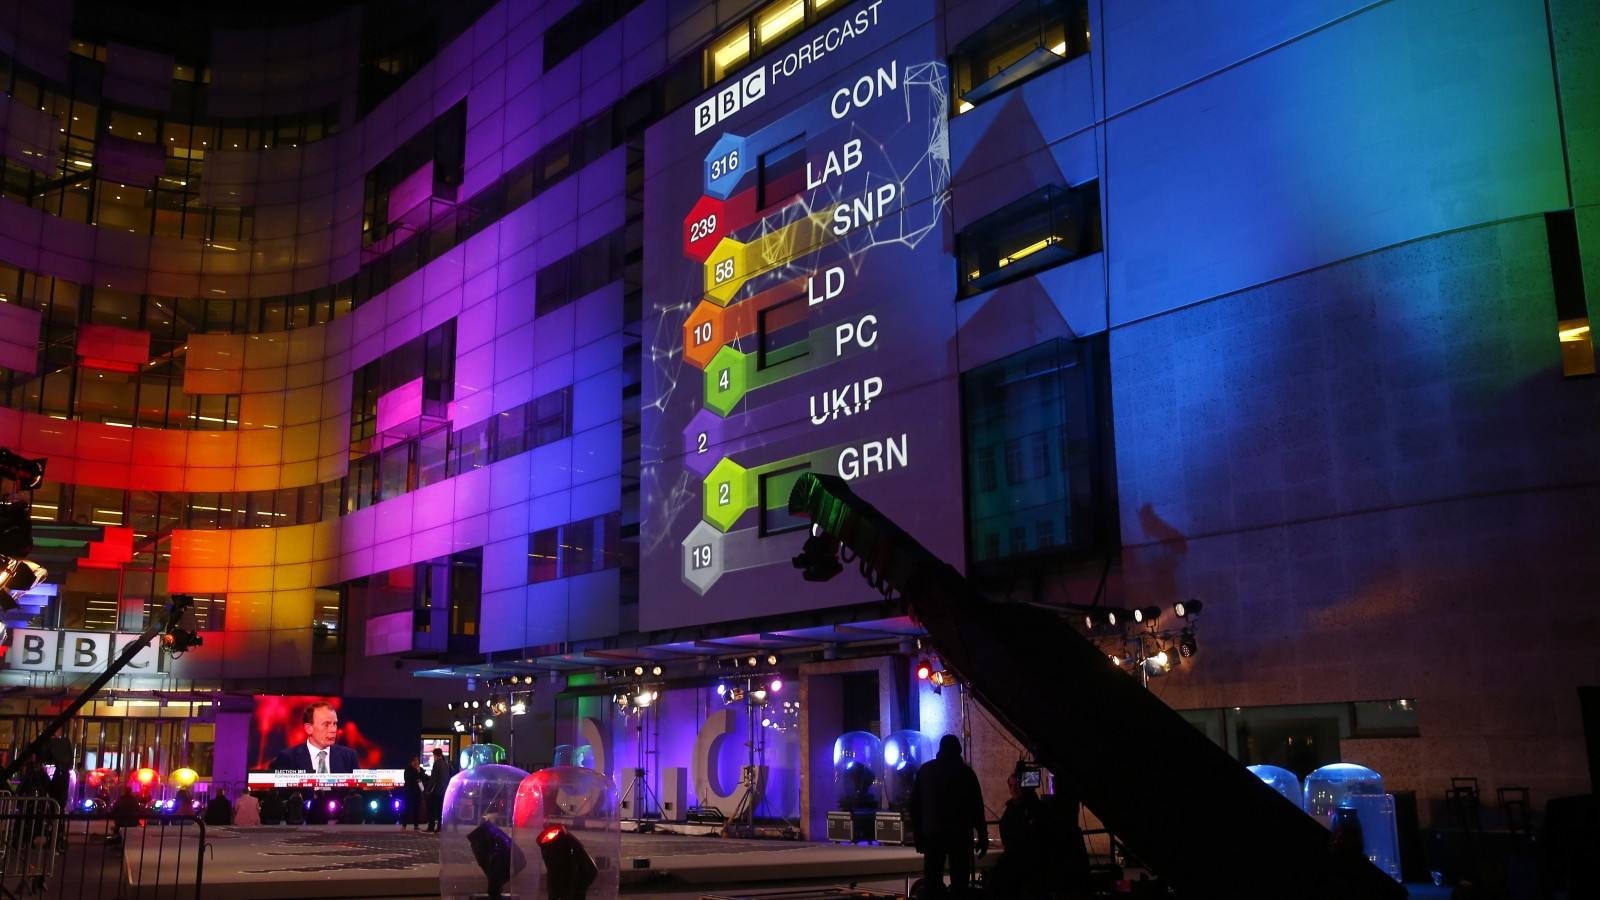 The results of exit polls are projected on to the side of Broadcasting House, the headquarters of the BBC, after voting closed in Britain's general election, in central London, May 8, 2015. REUTERS/Eddie Keogh